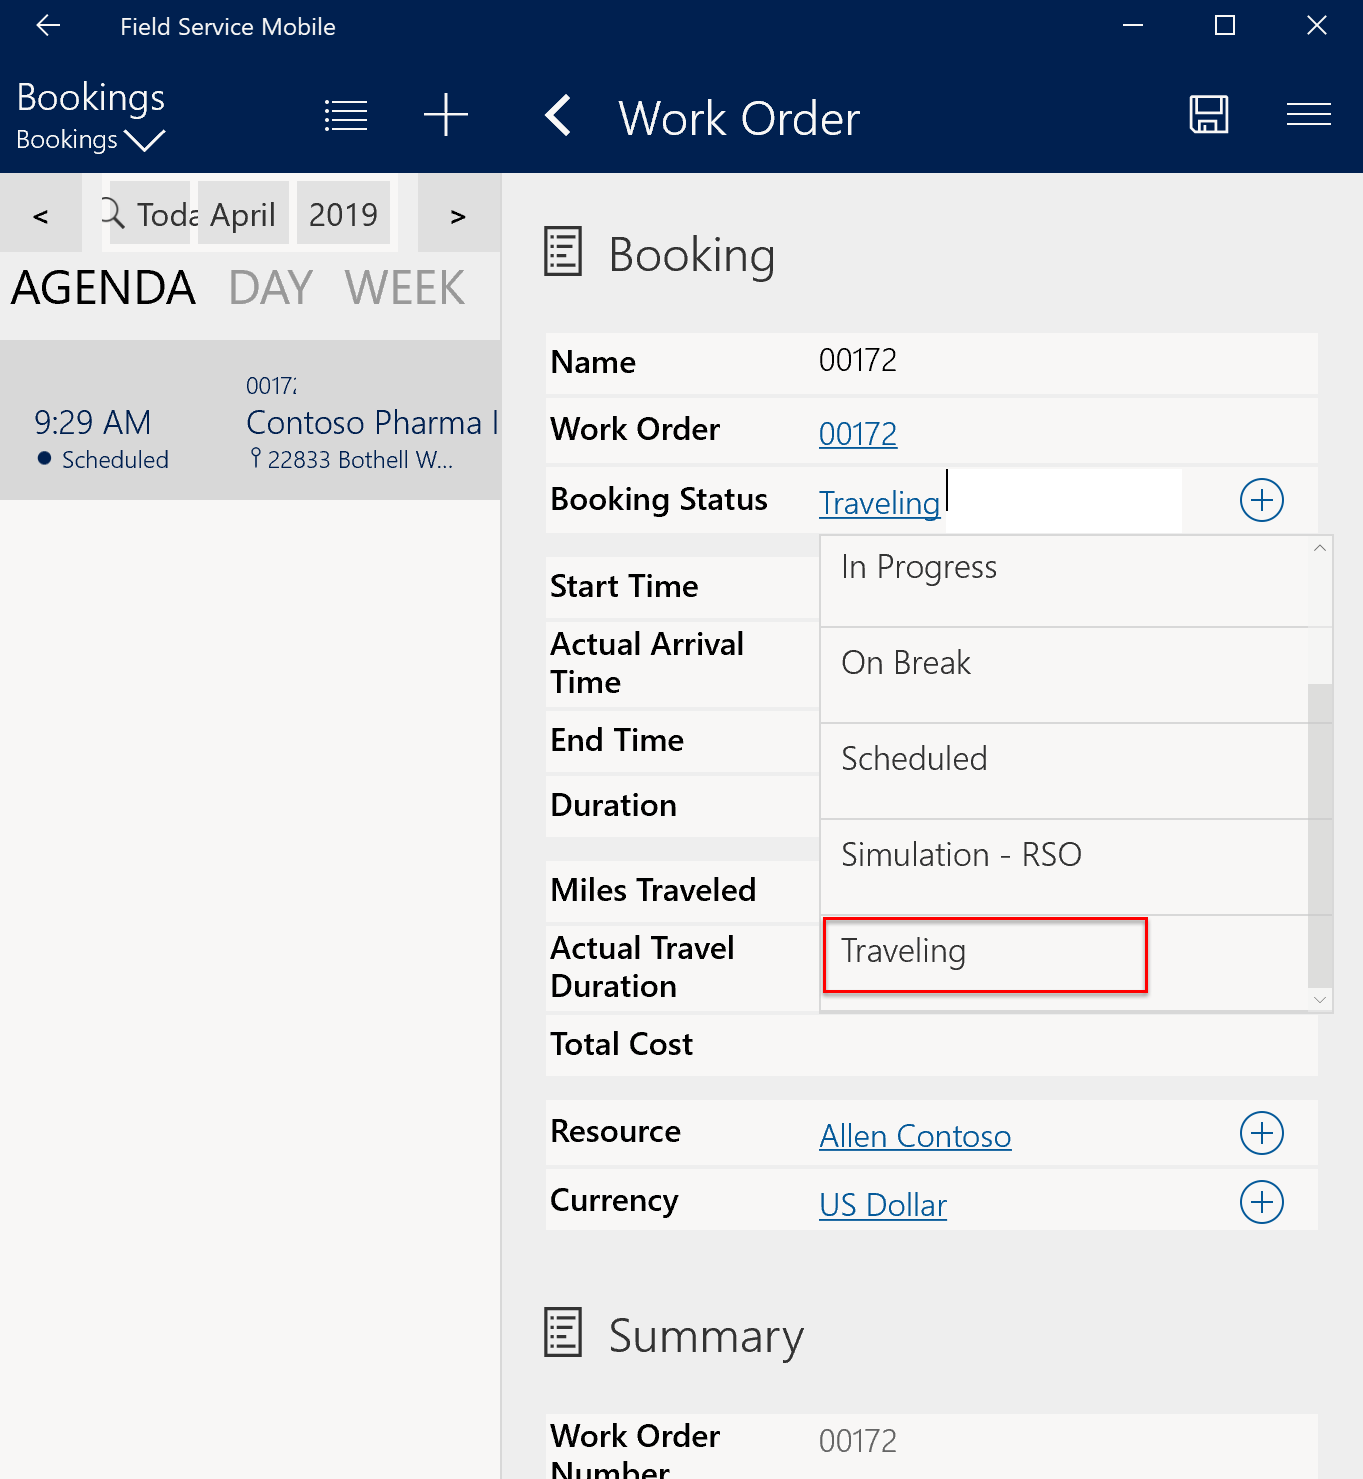 Work order and booking statuses | Microsoft Docs